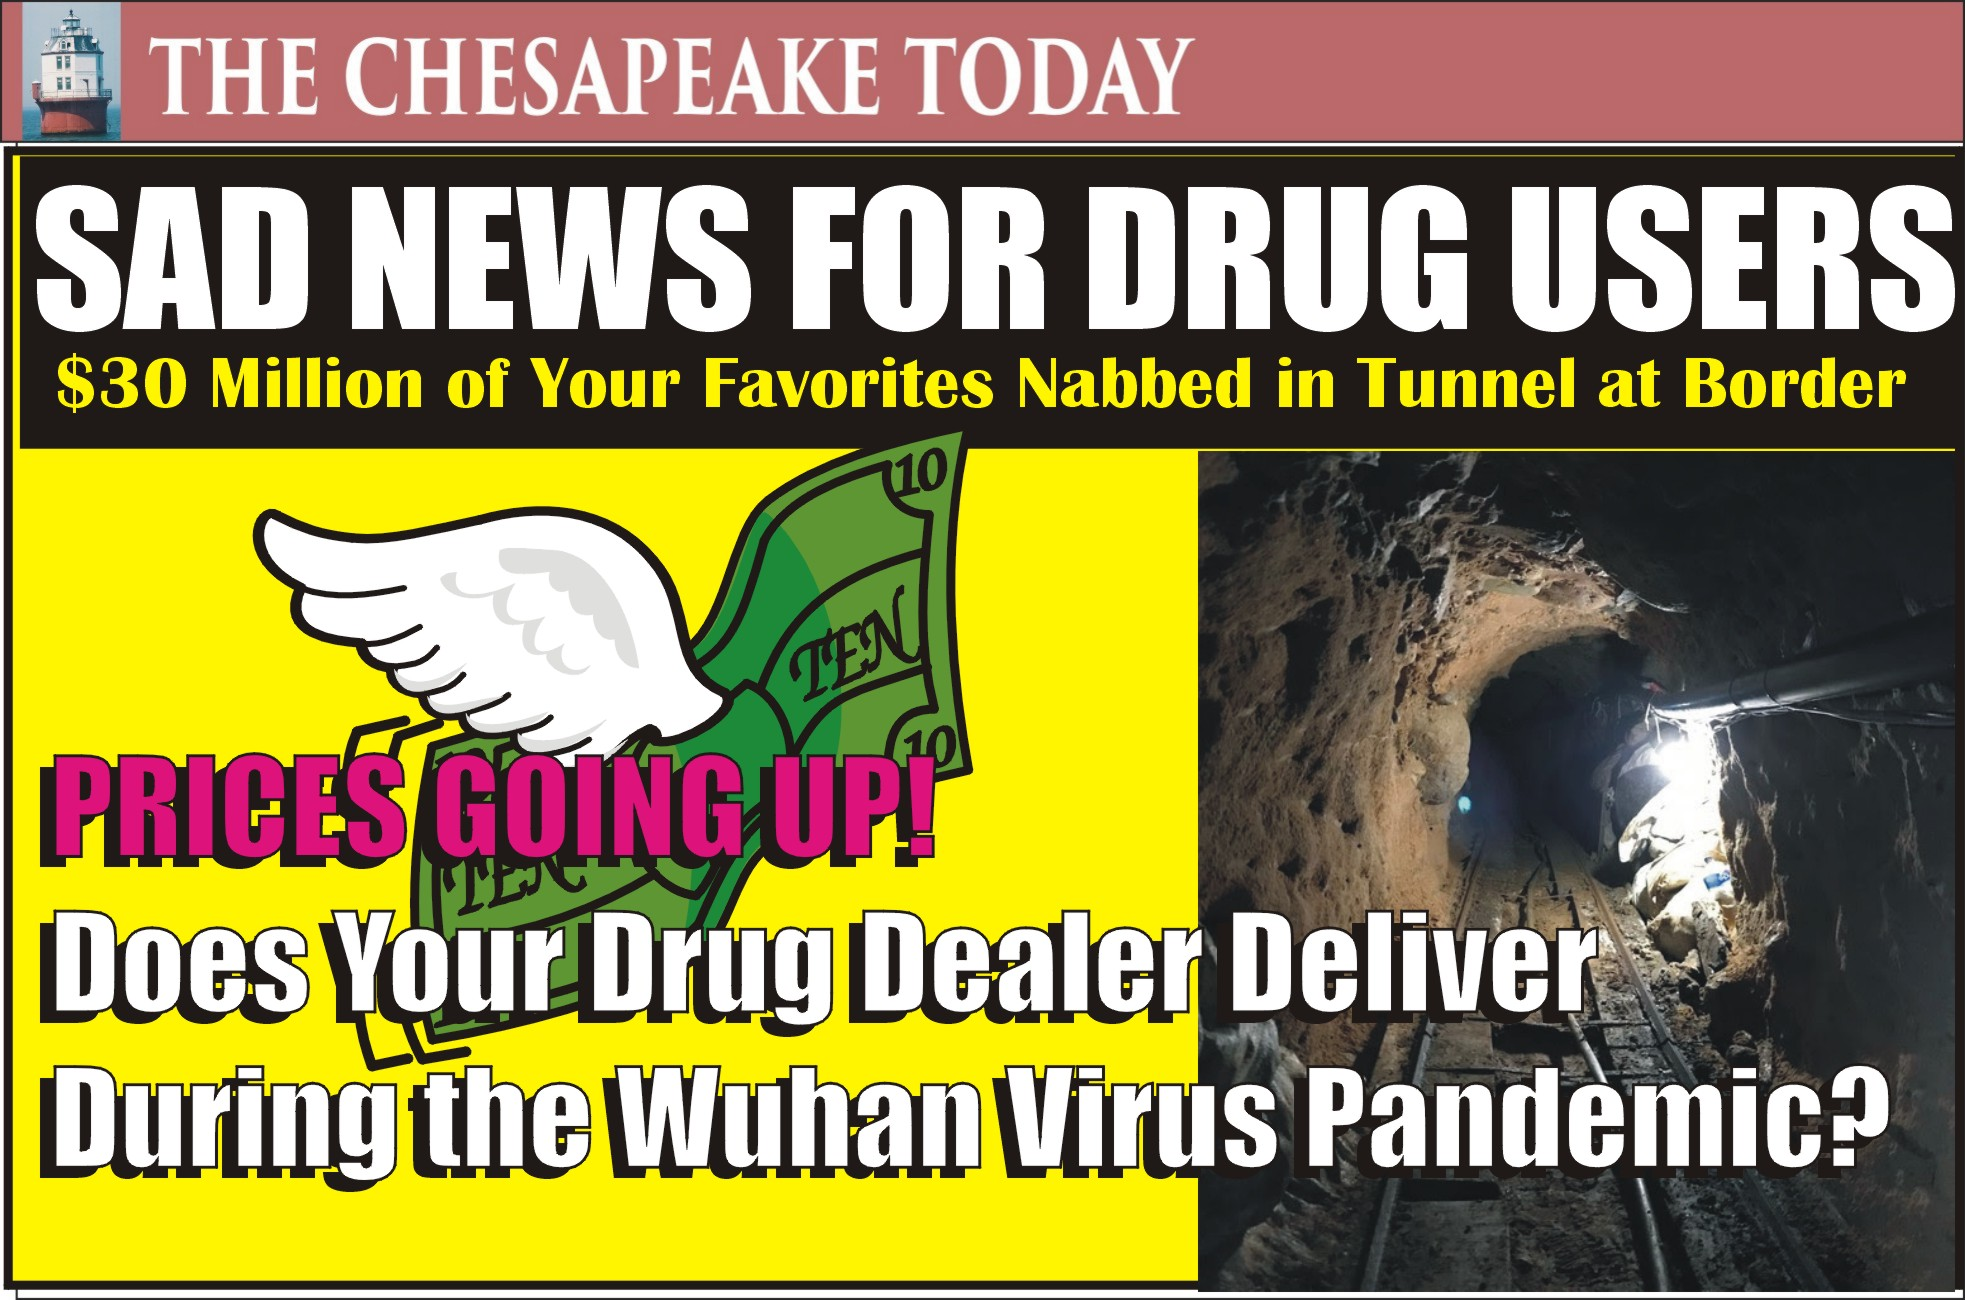 DRUG DEALER HAPPENINGS: San Diego Tunnel Task Force uncovers sophisticated cross-border drug tunnel under the U.S./Mexico border